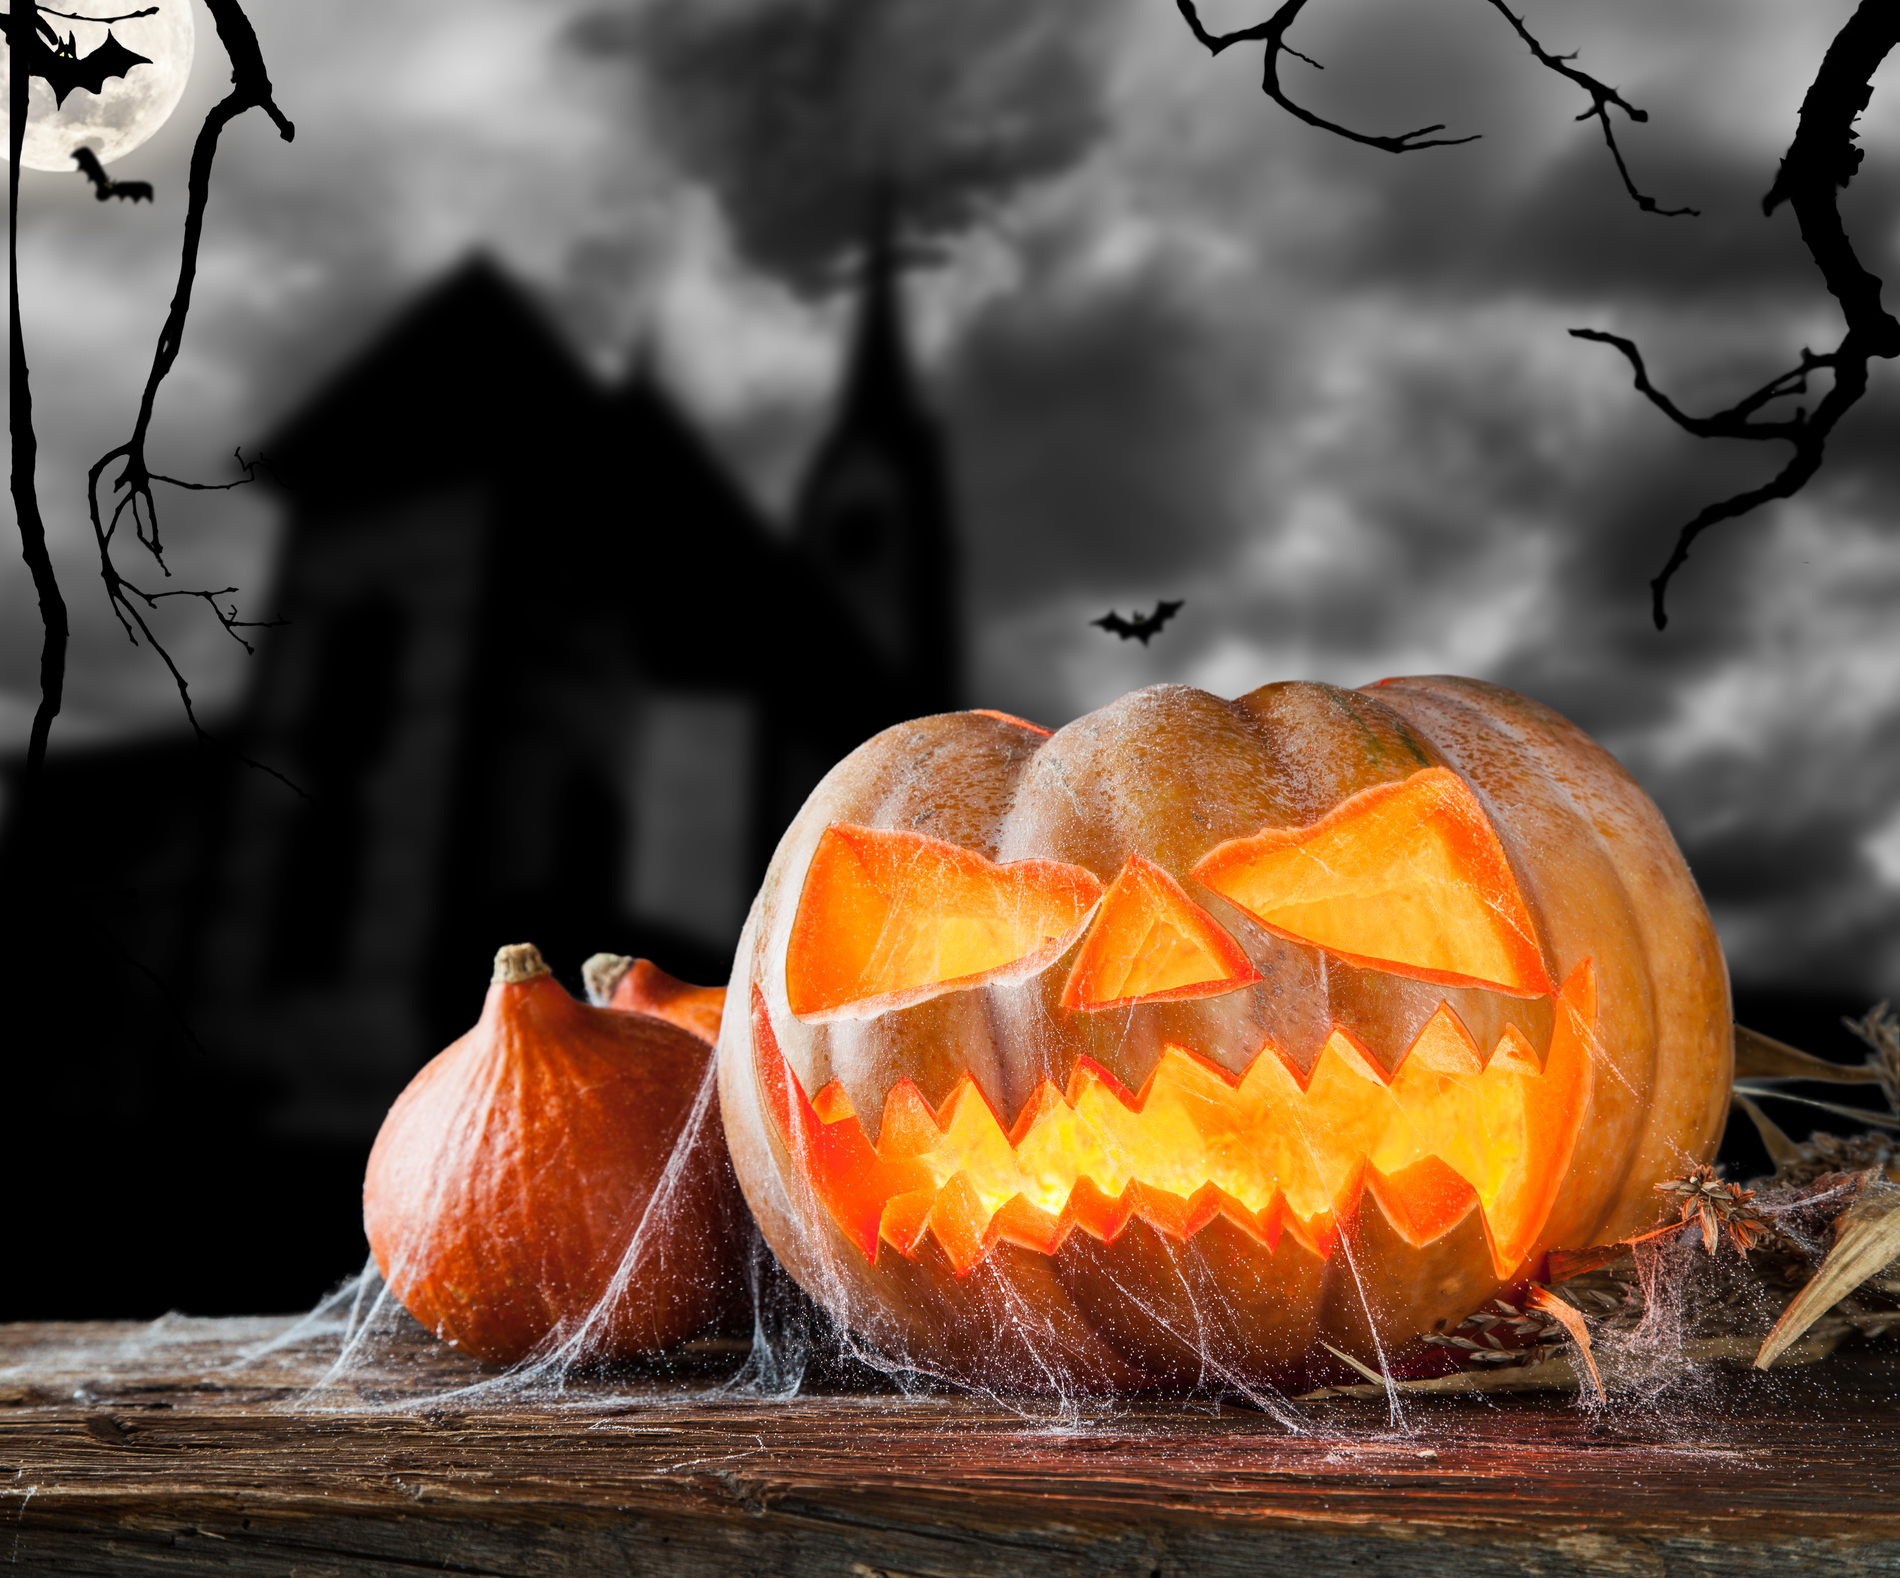 5 Halloween Marketing Ideas for Your Business